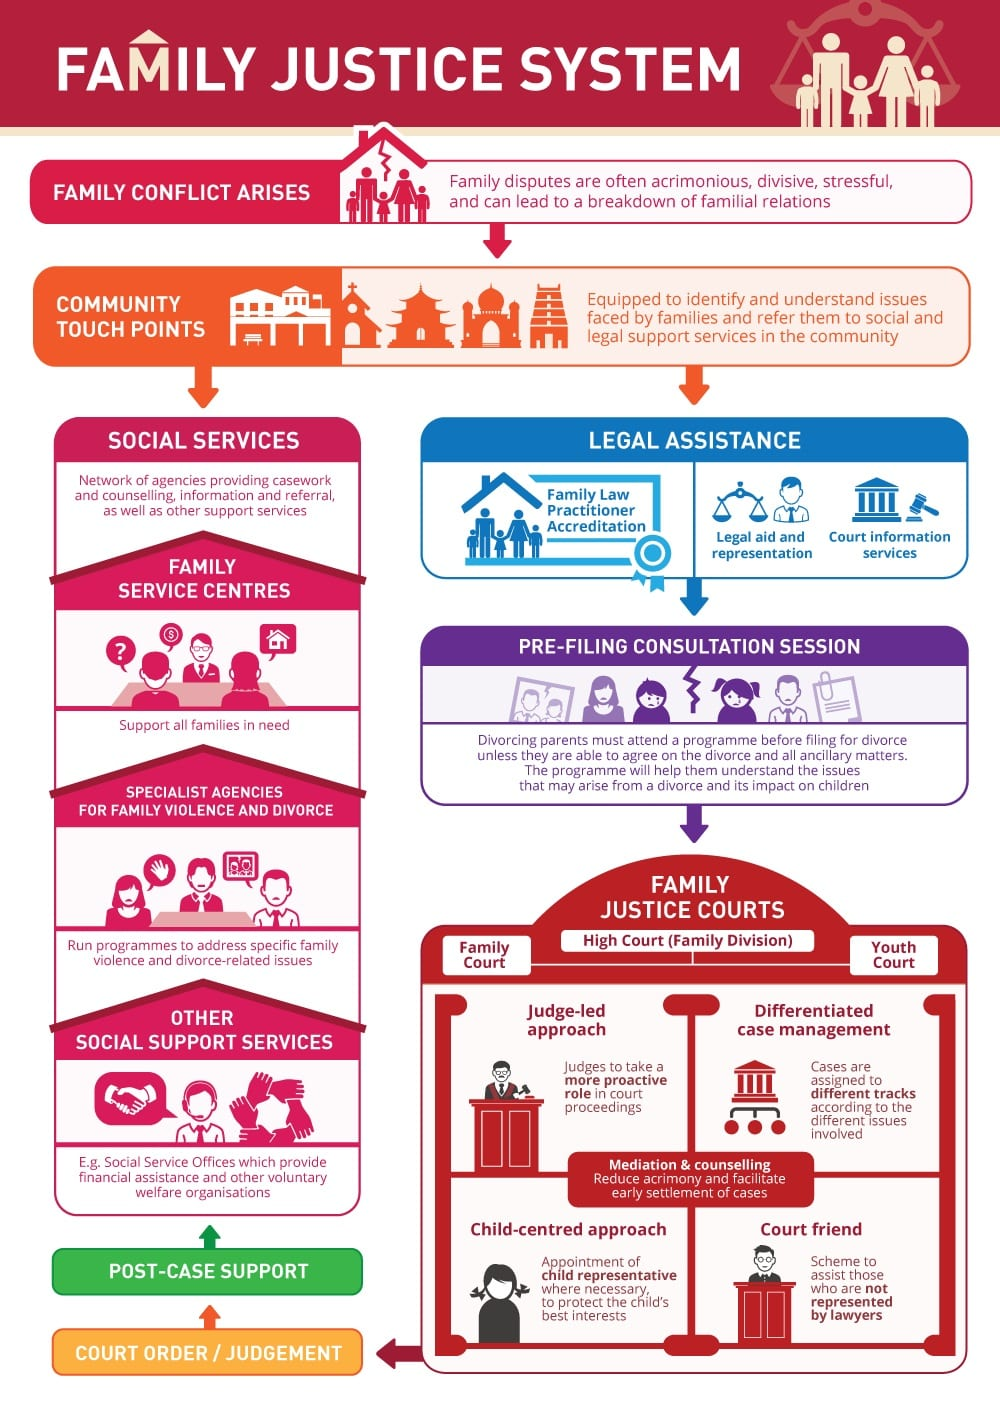 Recommendations to transform the Family Justice System